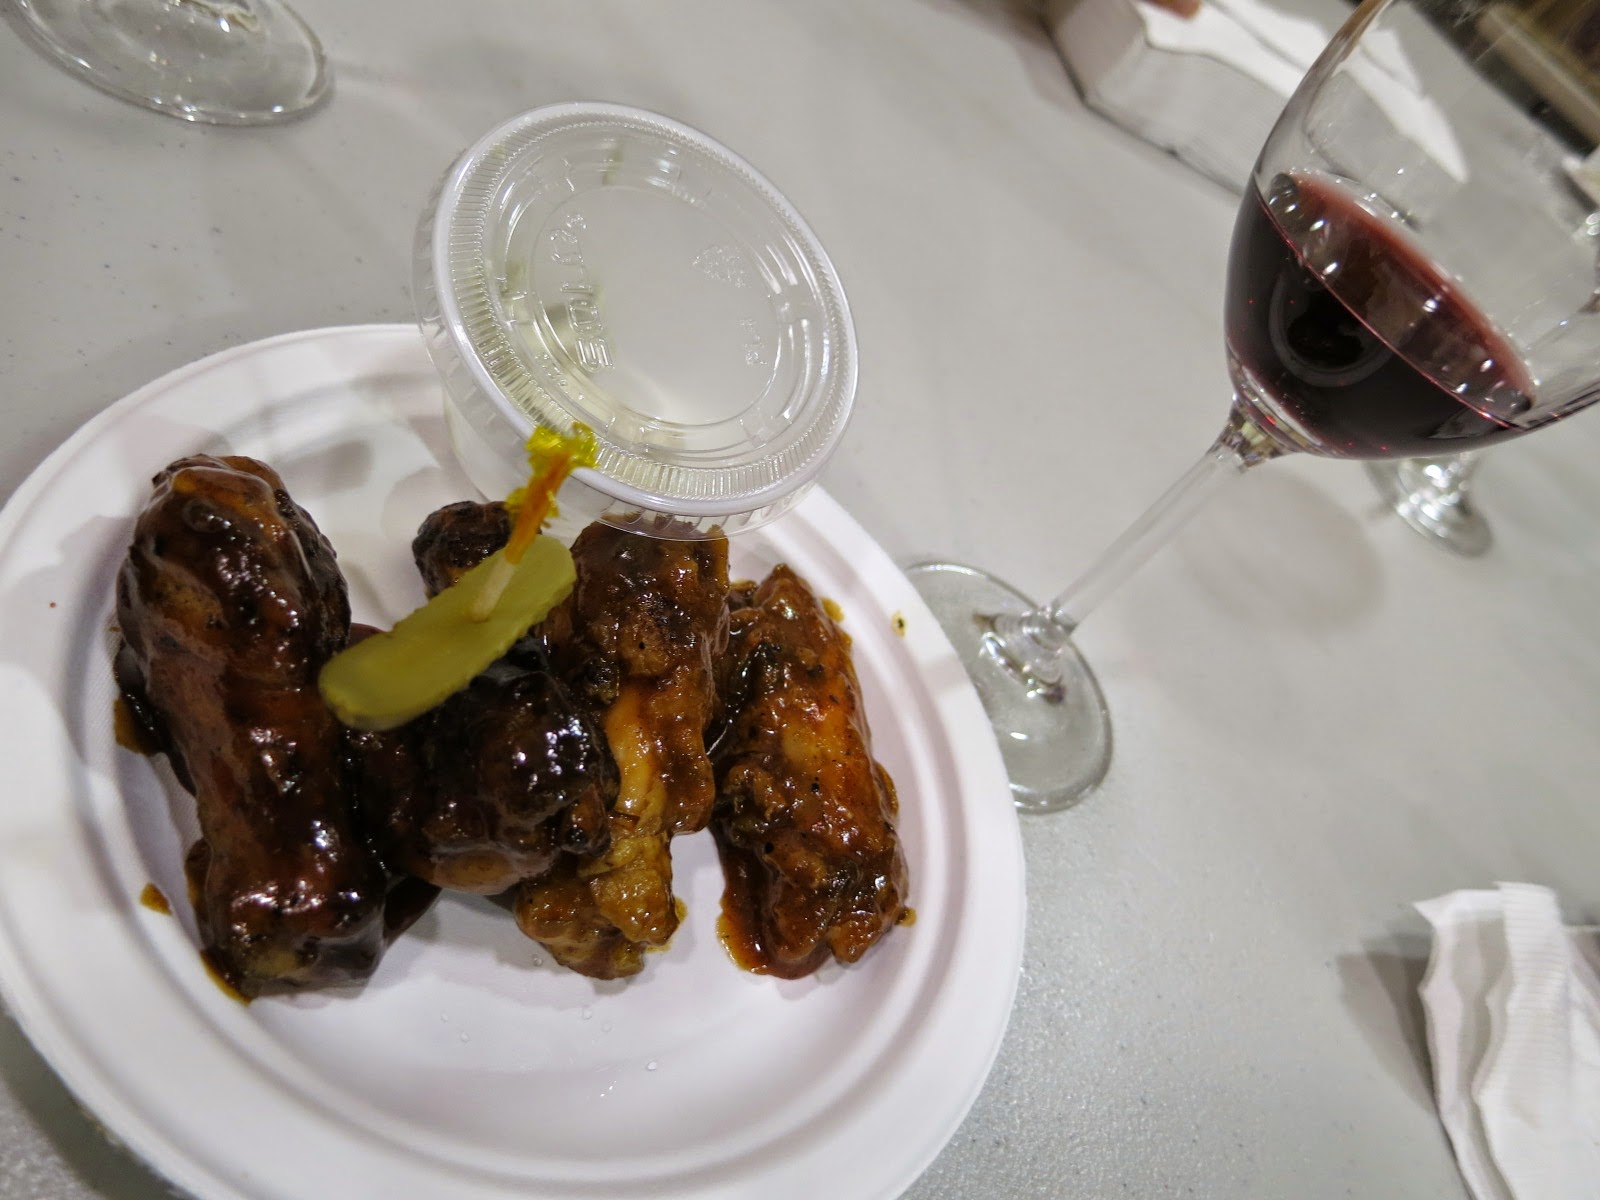 Chicken wings and 2013 O'Leary Cabernet Merlot